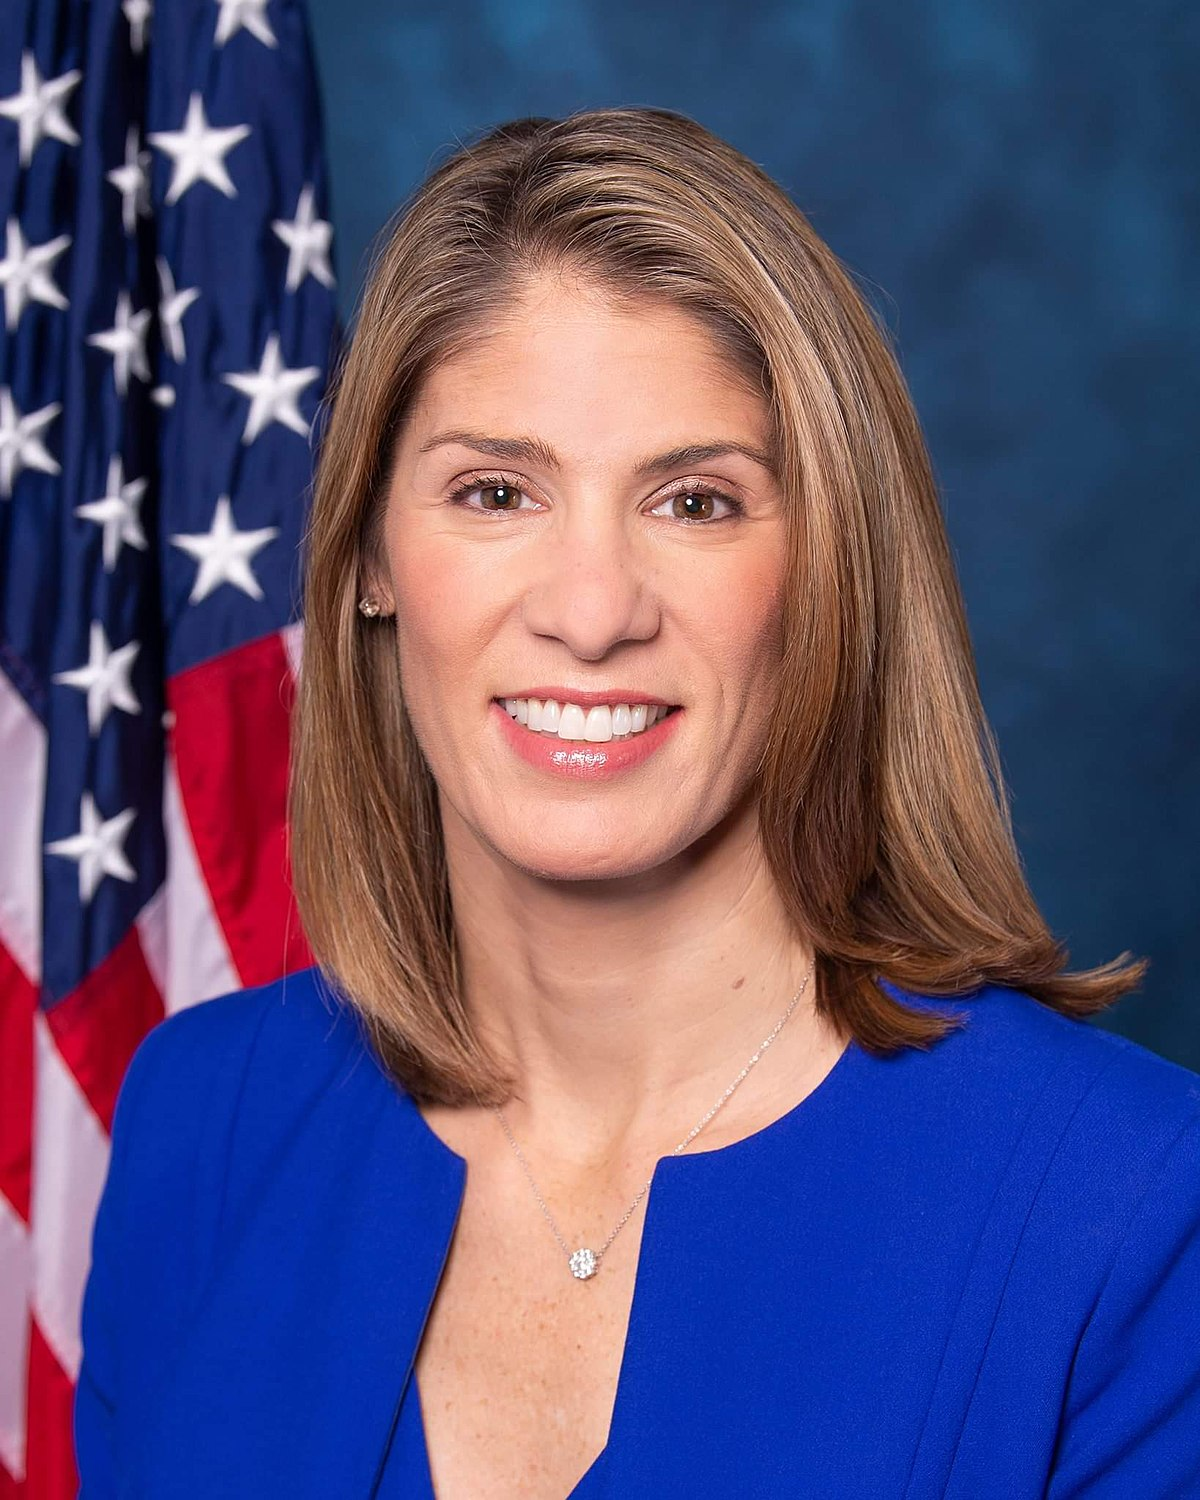 Lori Trahan, Massachusetts 3rd District - Lowell Office126 John Street,Lowell, MA 01852Phone: 978-459-0101Contact By Email